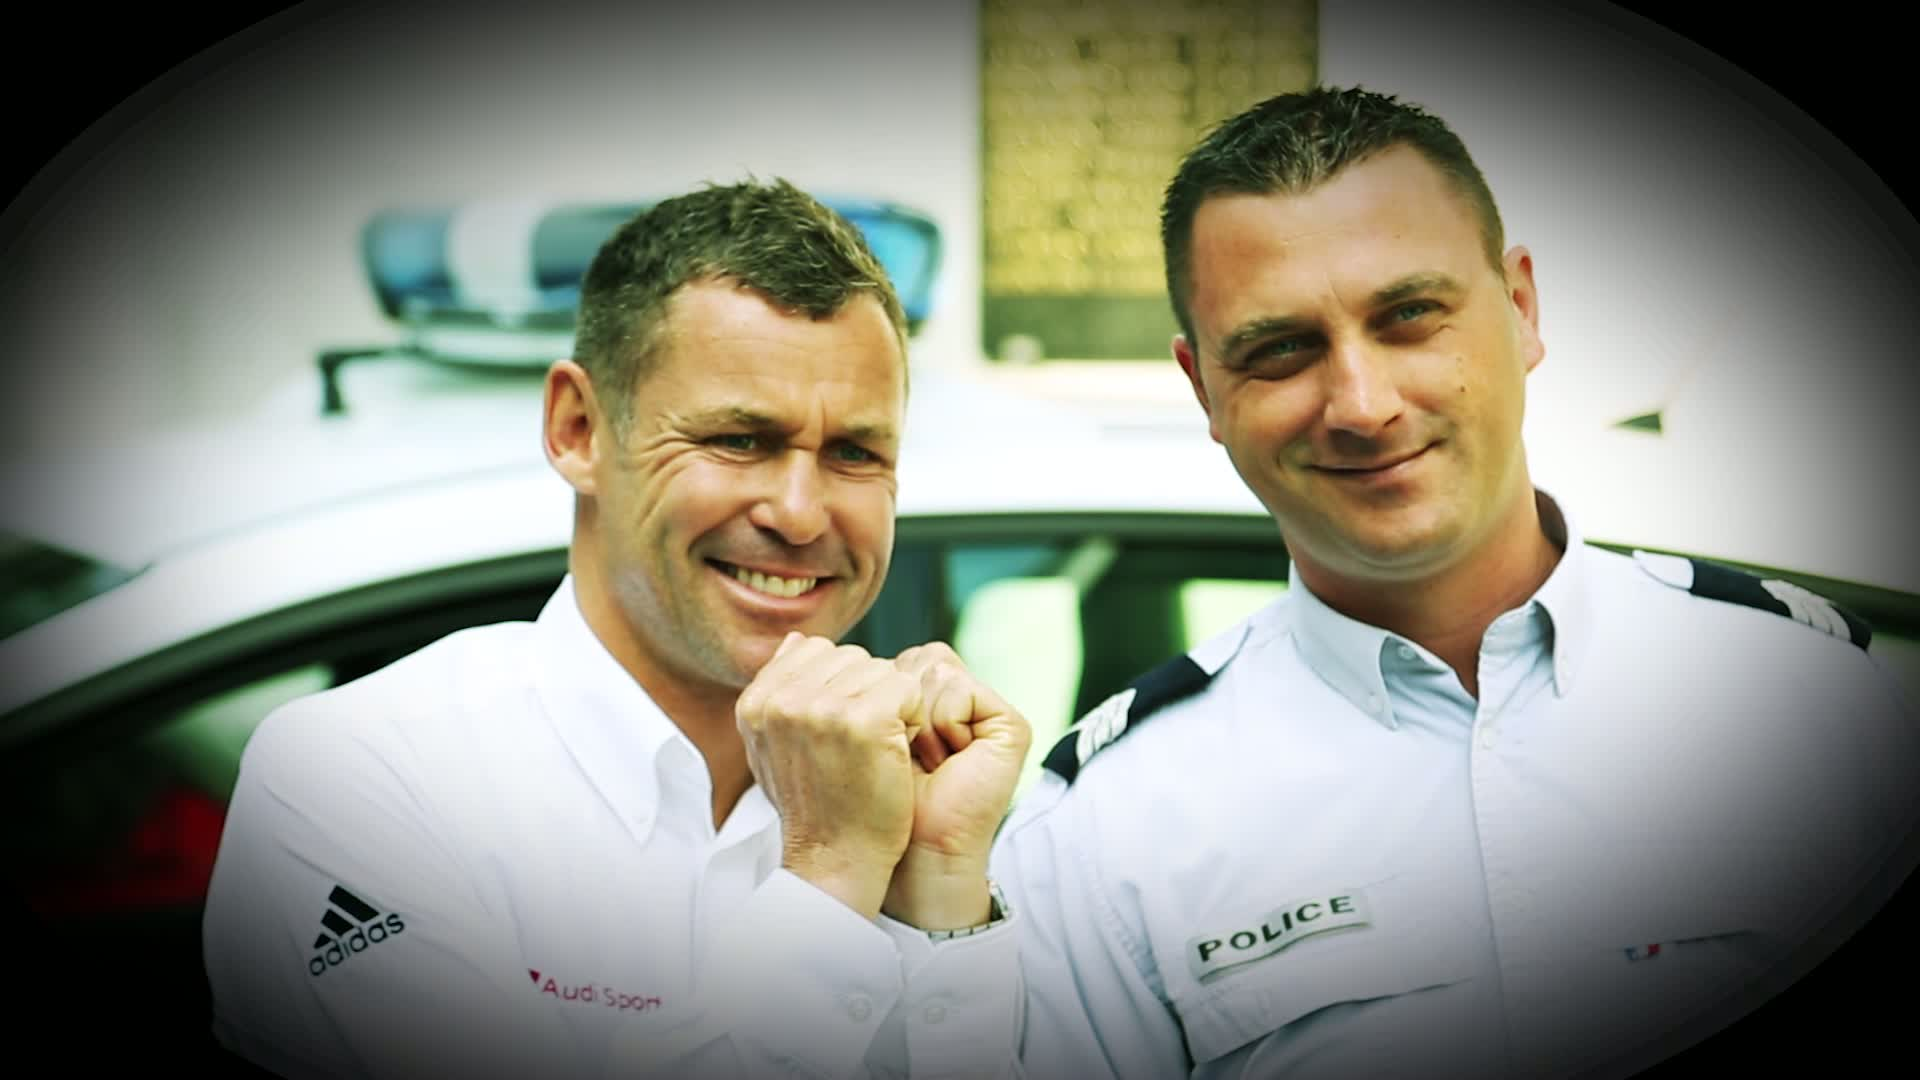 60 Seconds of Audi Sport 36/2015 - Tom Kristensen besucht die Polizei in Le Mans